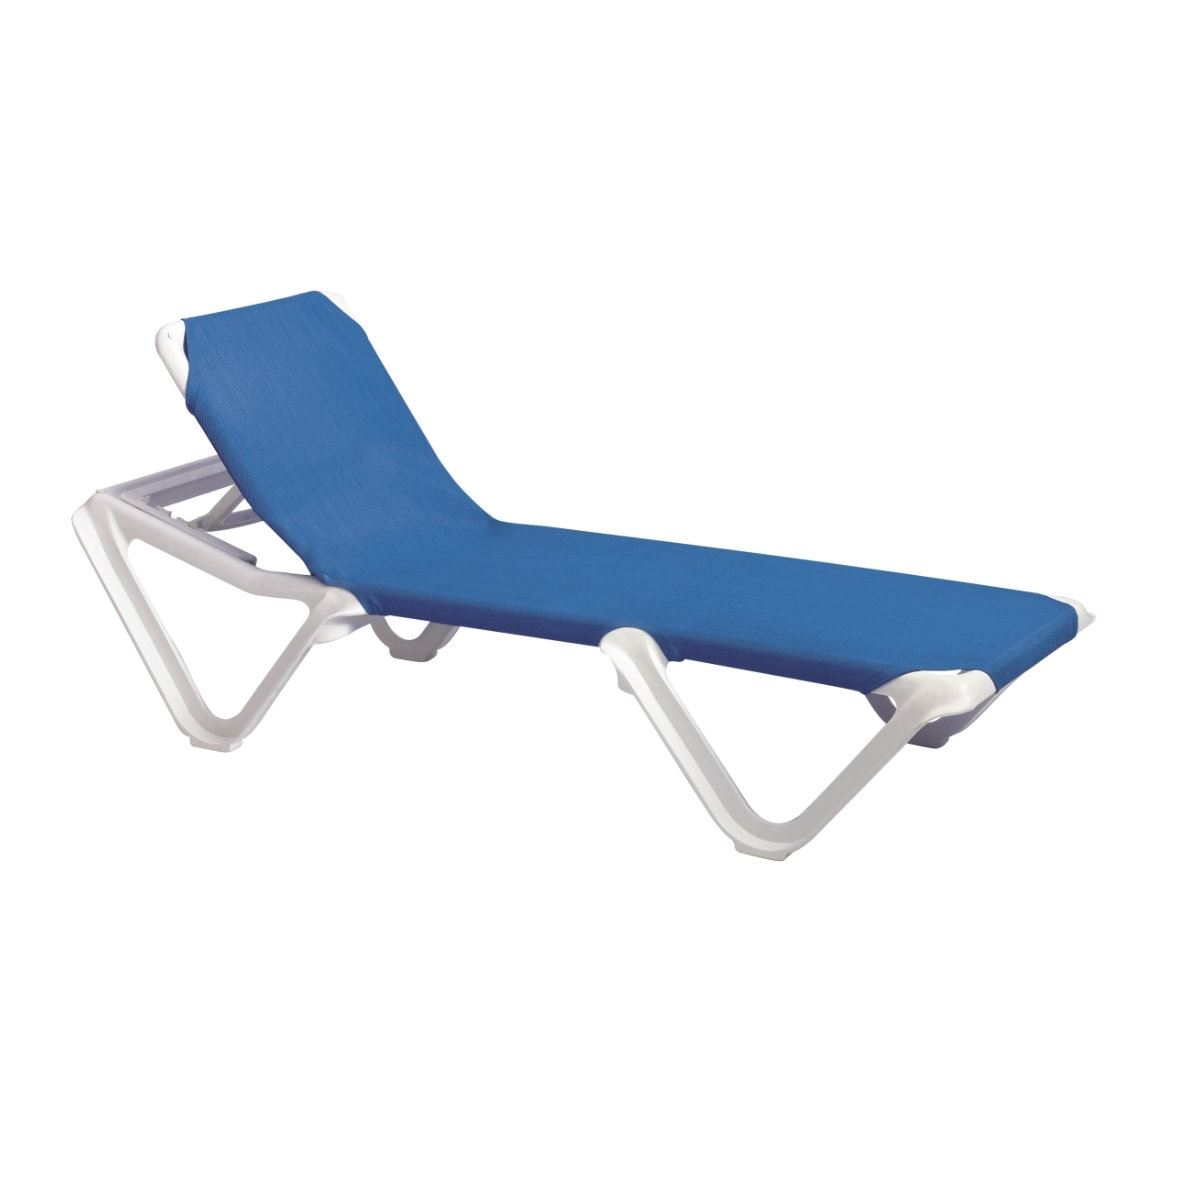 Chaise Lounge Frame Sling Plastic Resin Nautical Pool